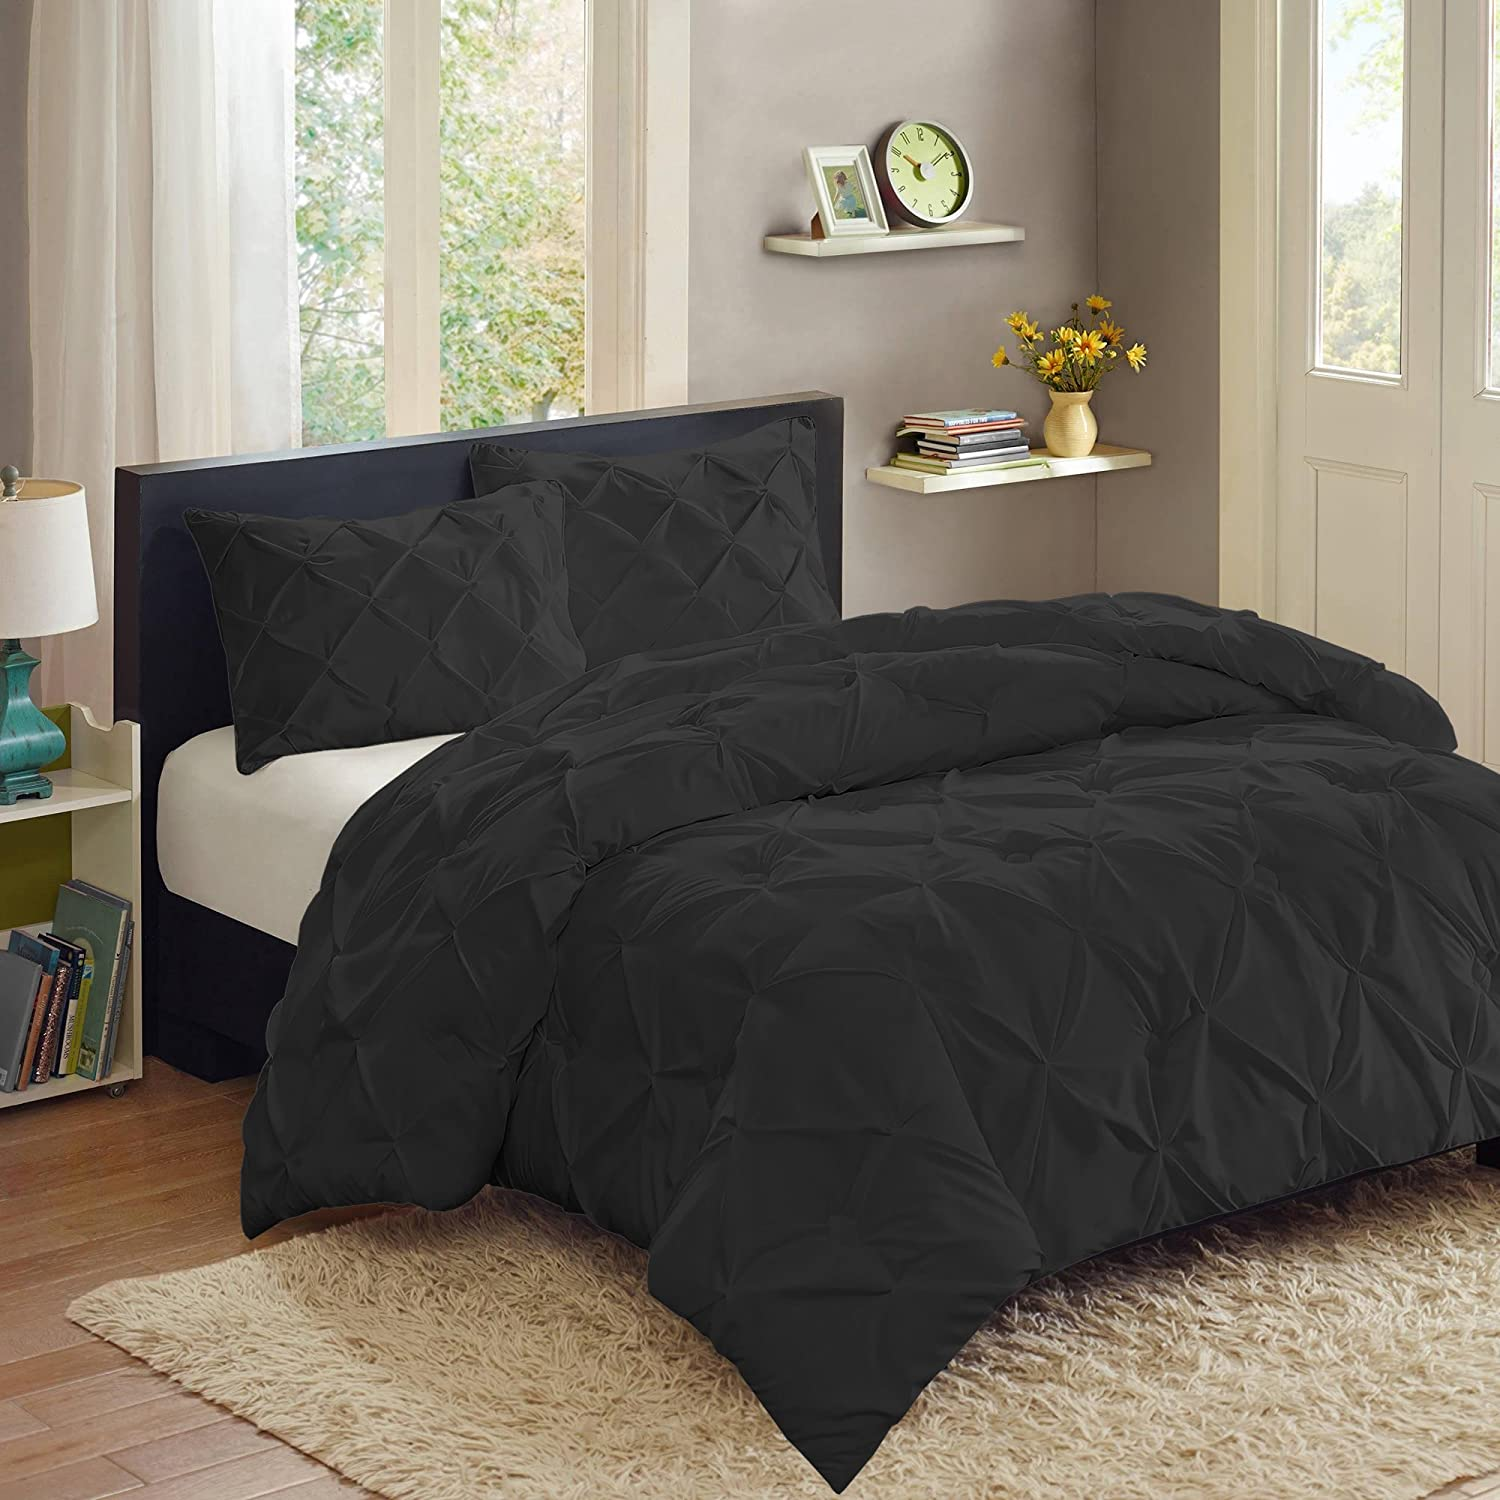 3 Piece PP Luxury Pinch Pleat Pintuck Fashion Duvet Set